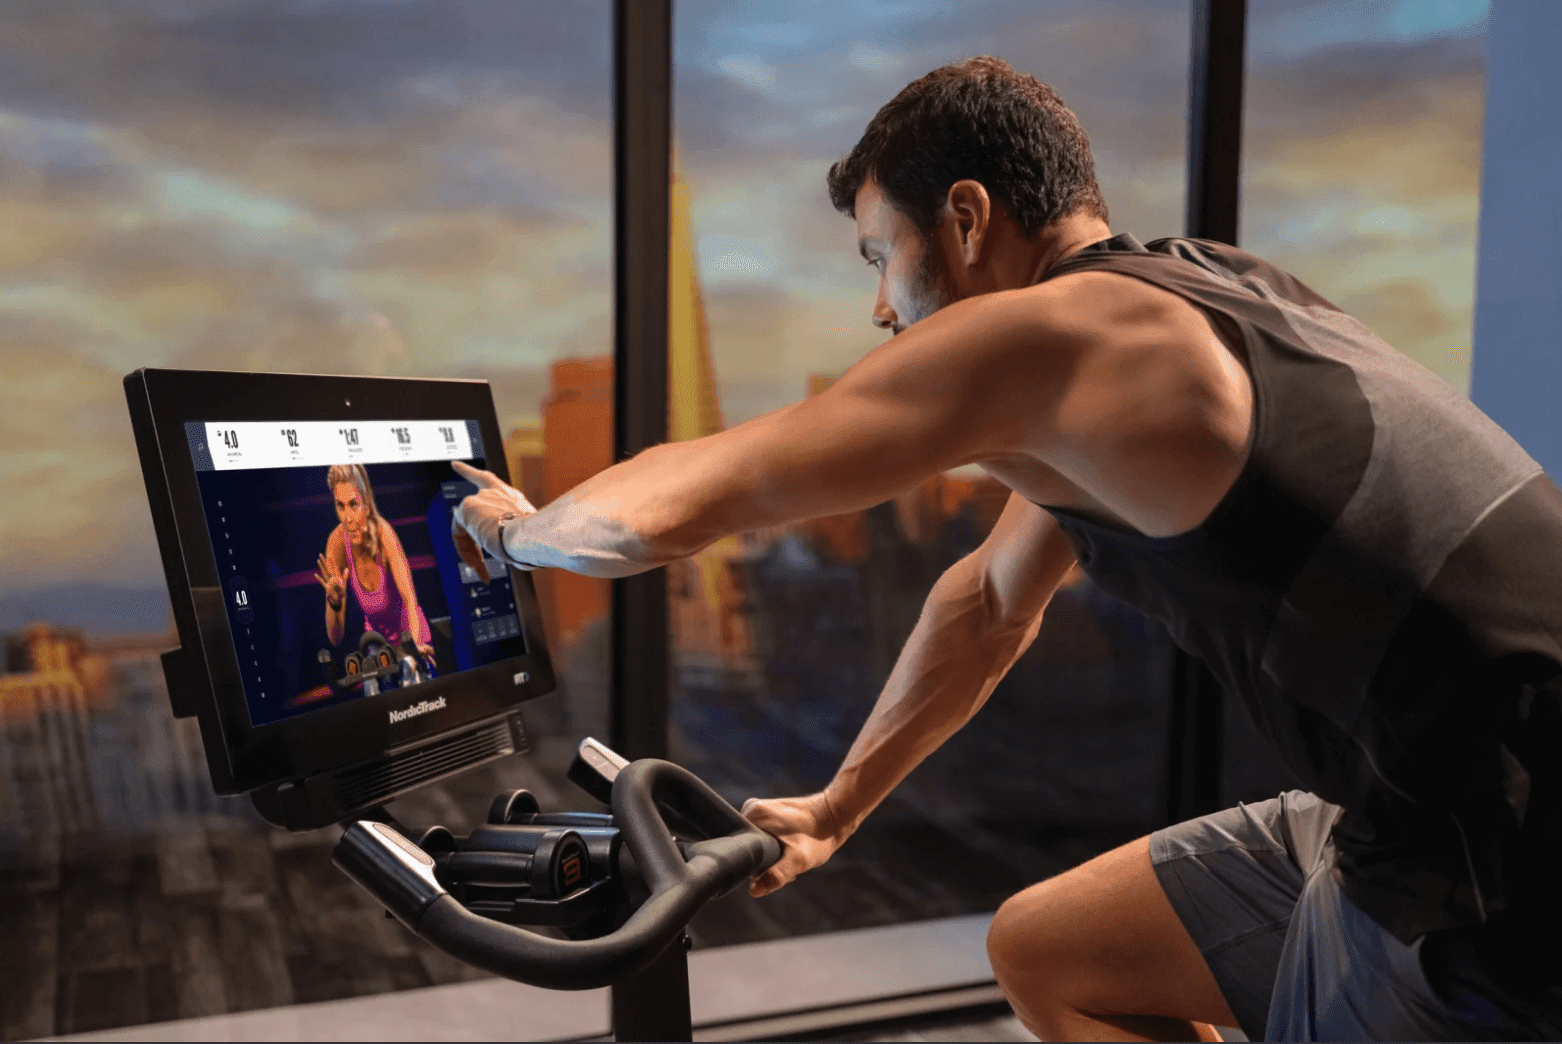 Man on exercise bike with digital screen.